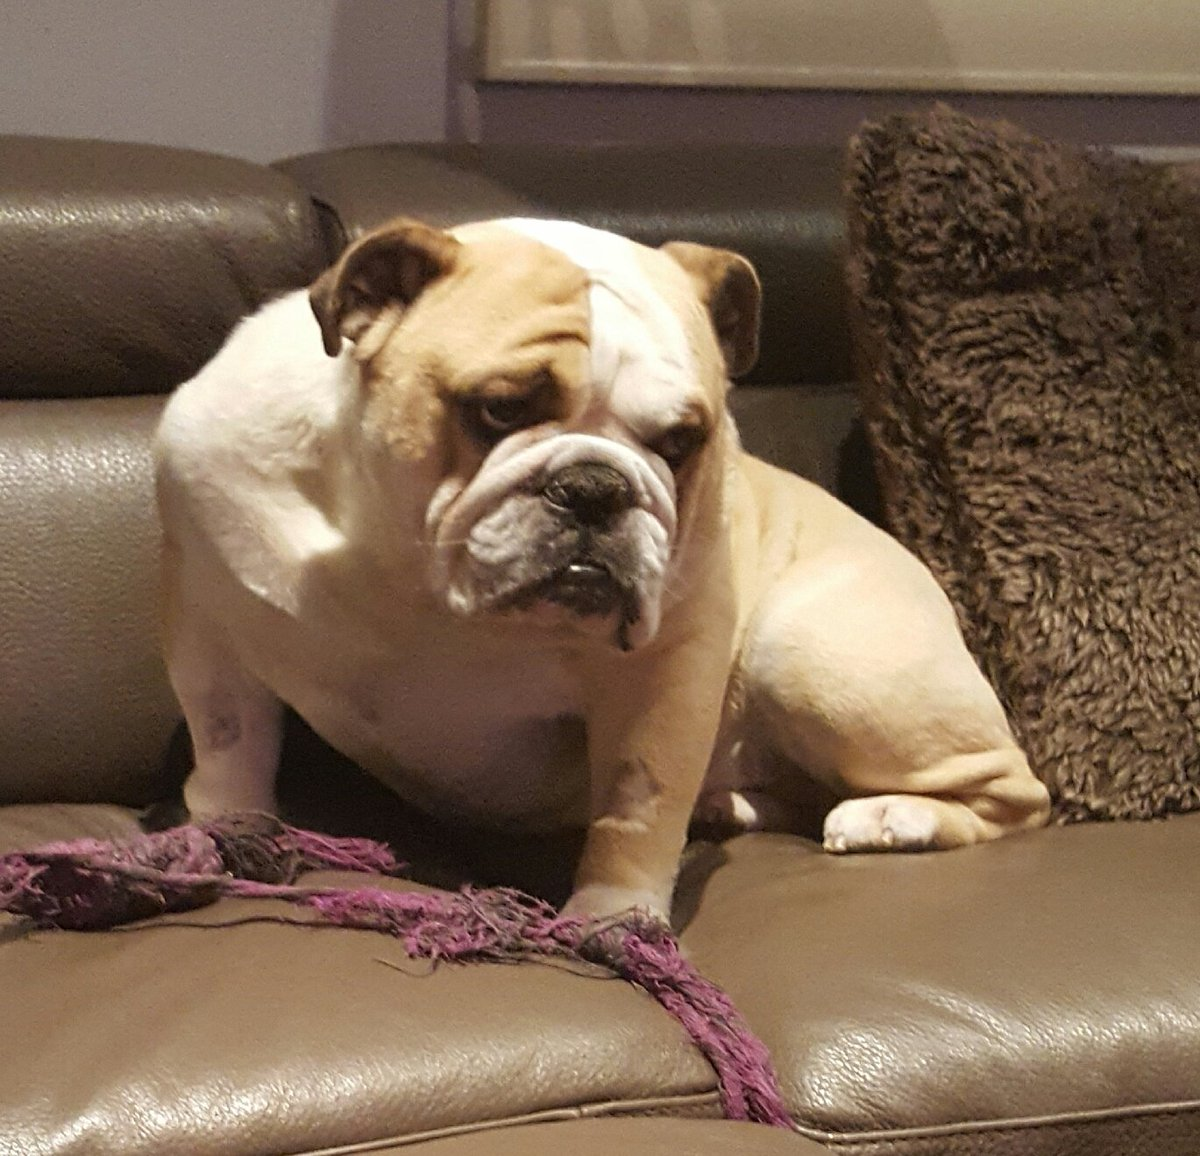 Took the bulldog in today to be neutered. He just seems so disappointed and pissed at me. #bulldogs #lovemydog #monkey #bigboydog #love